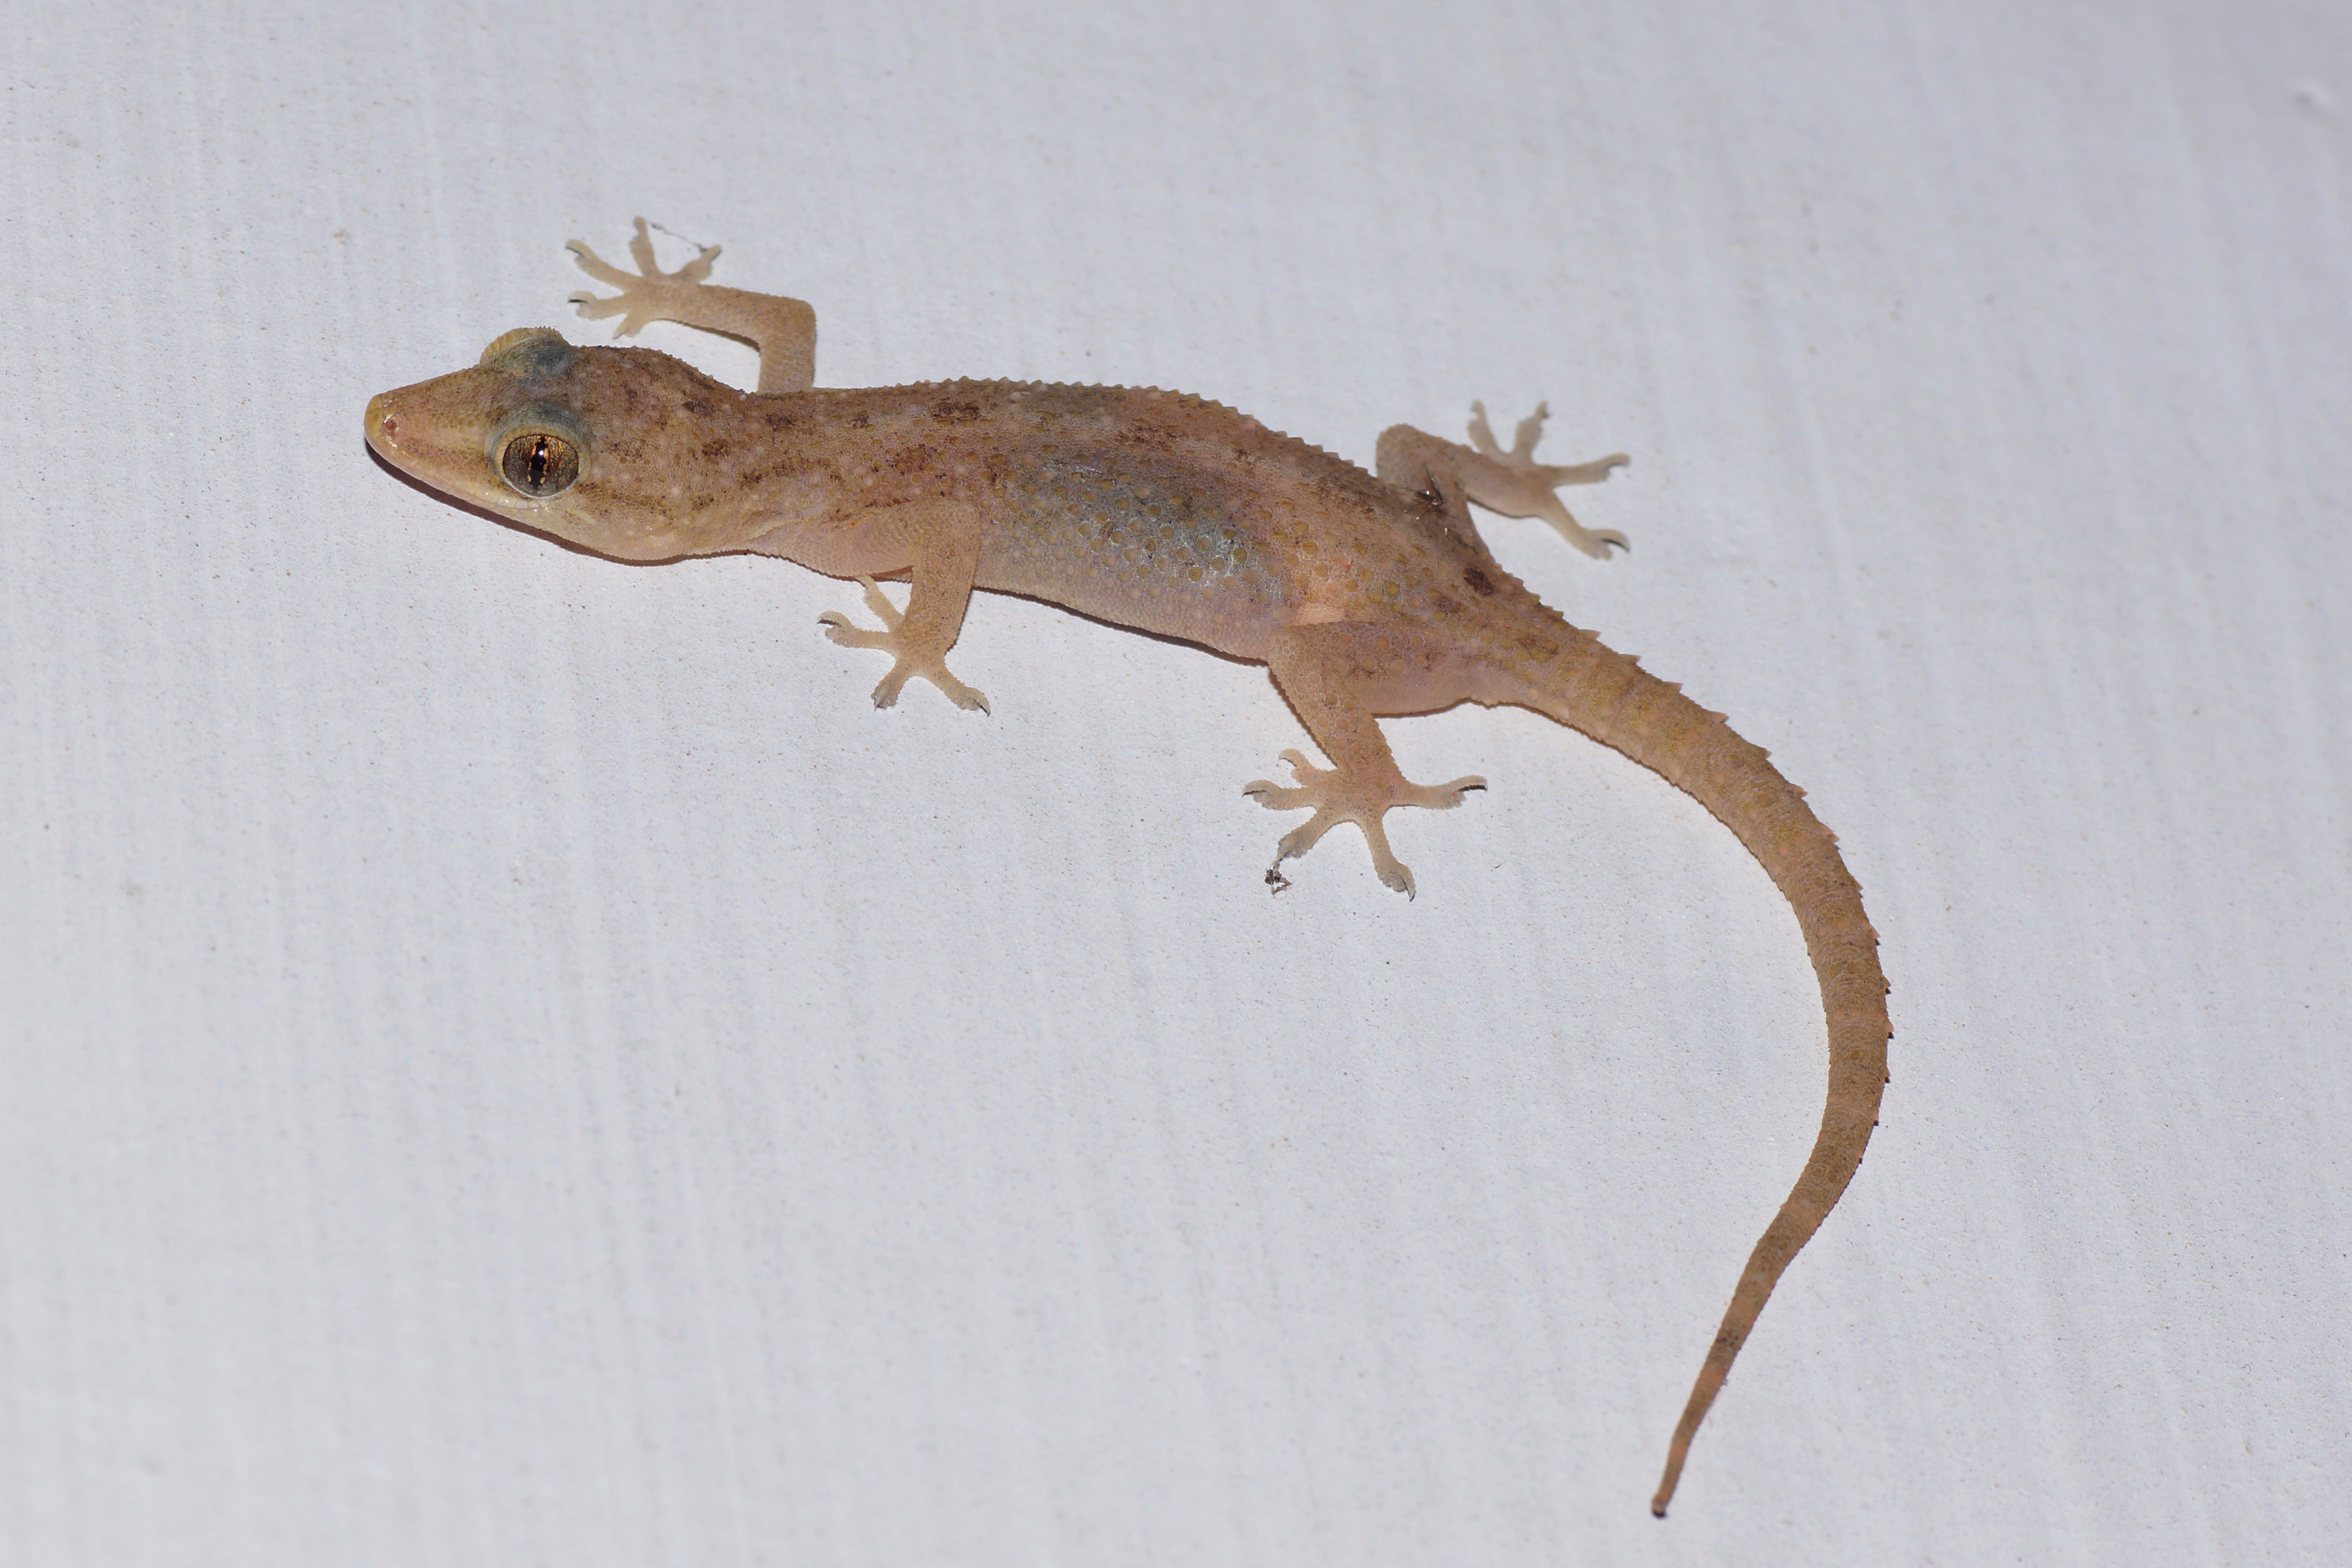 Pictures Of House Lizards | www.pixshark.com - Images ...